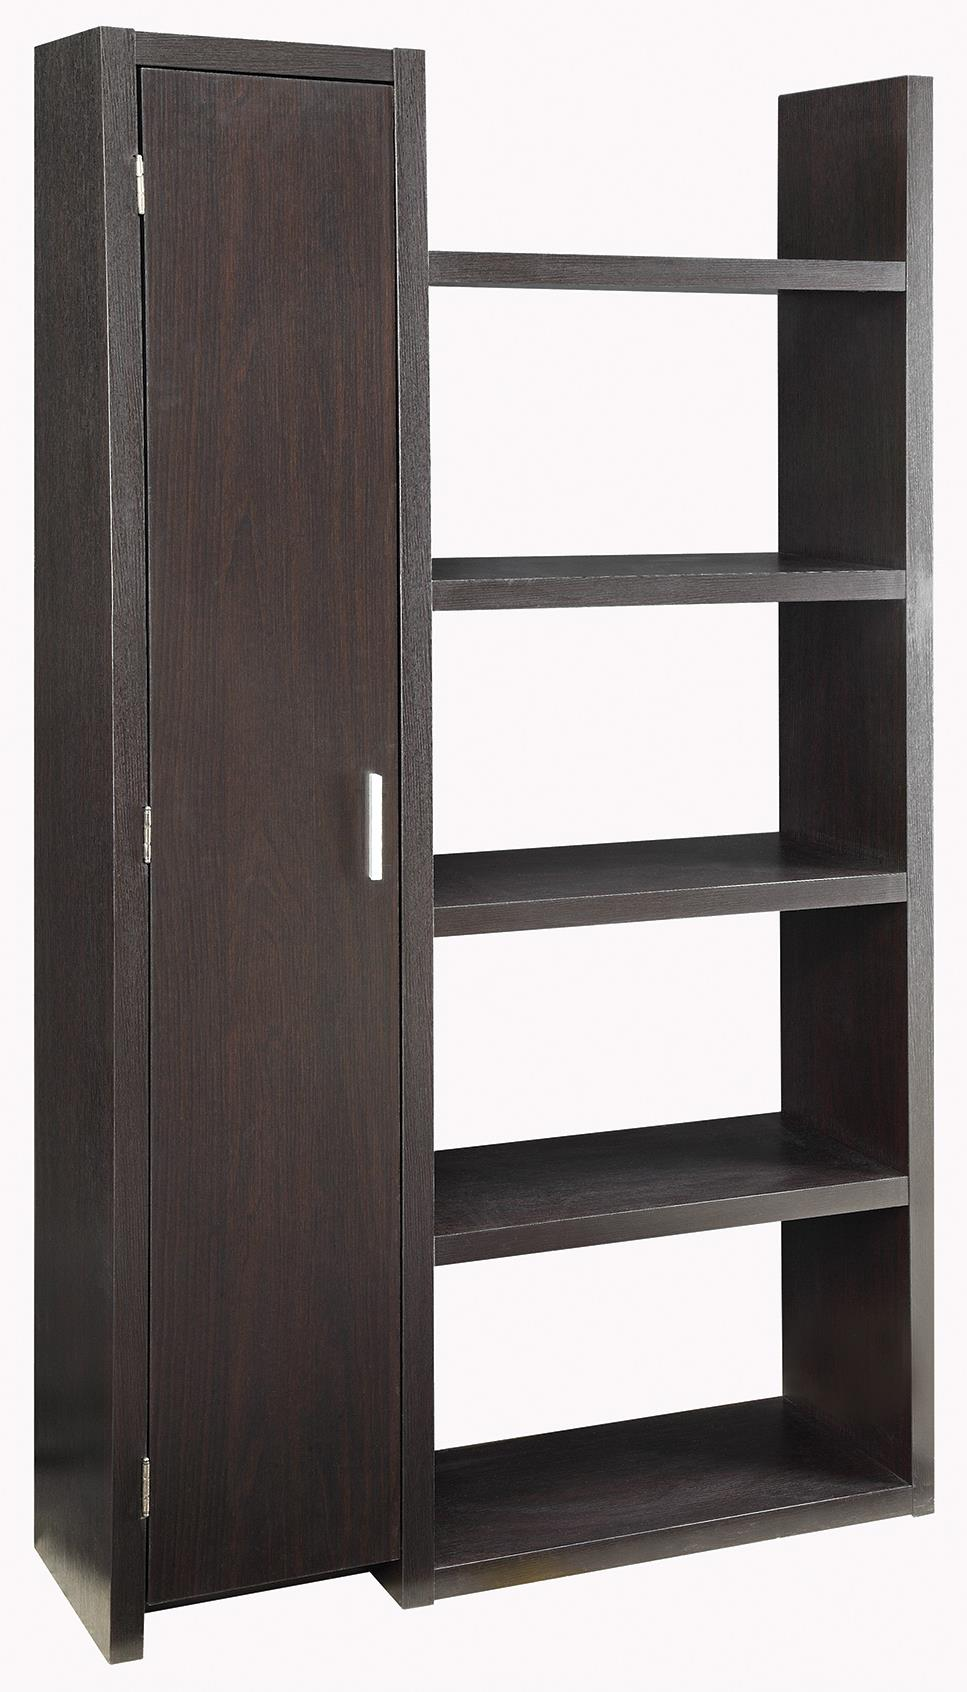 Coaster Bookcases Bookcase - Item Number: 800626